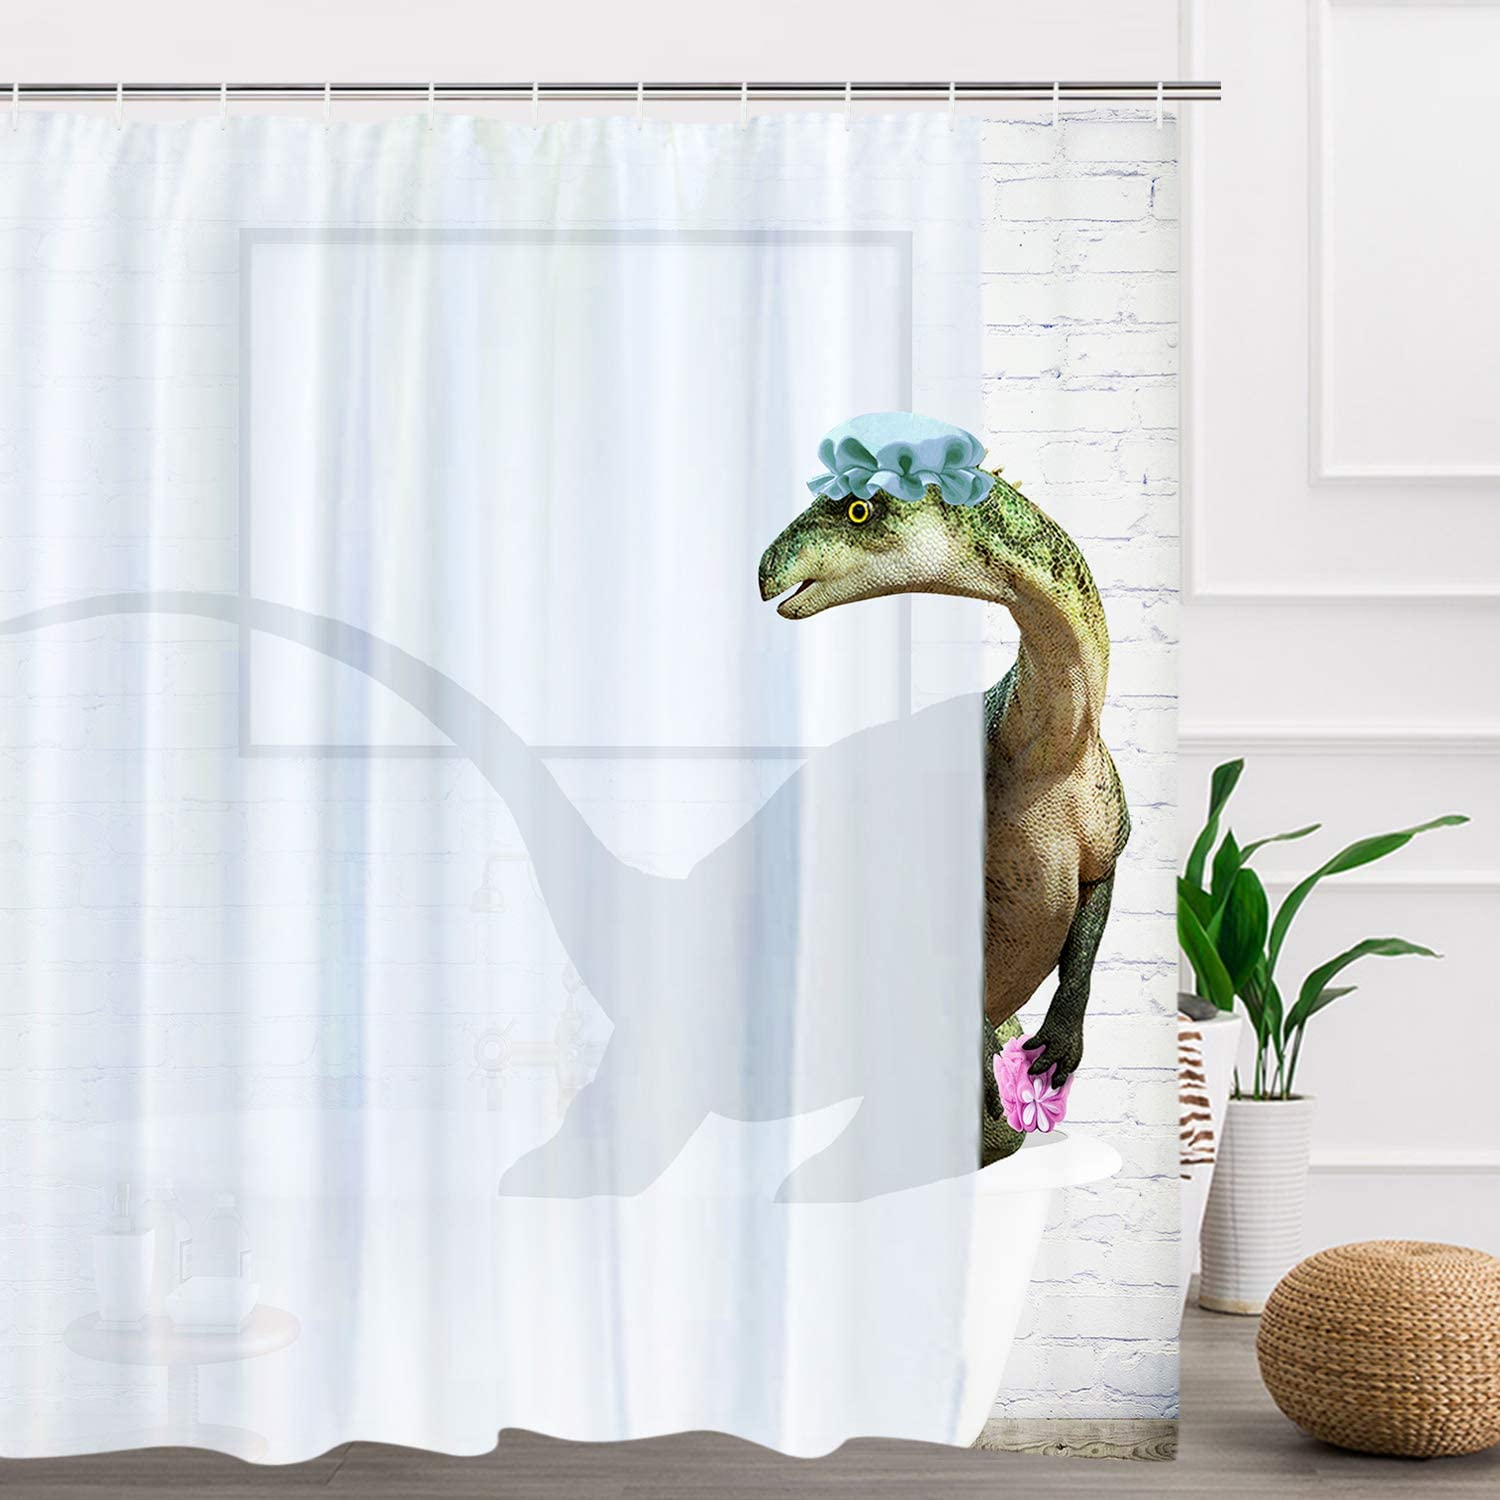 Waterproof Fabric Jurassic Dinosaur Era Bathroom Mat Shower Curtain Liner Hooks